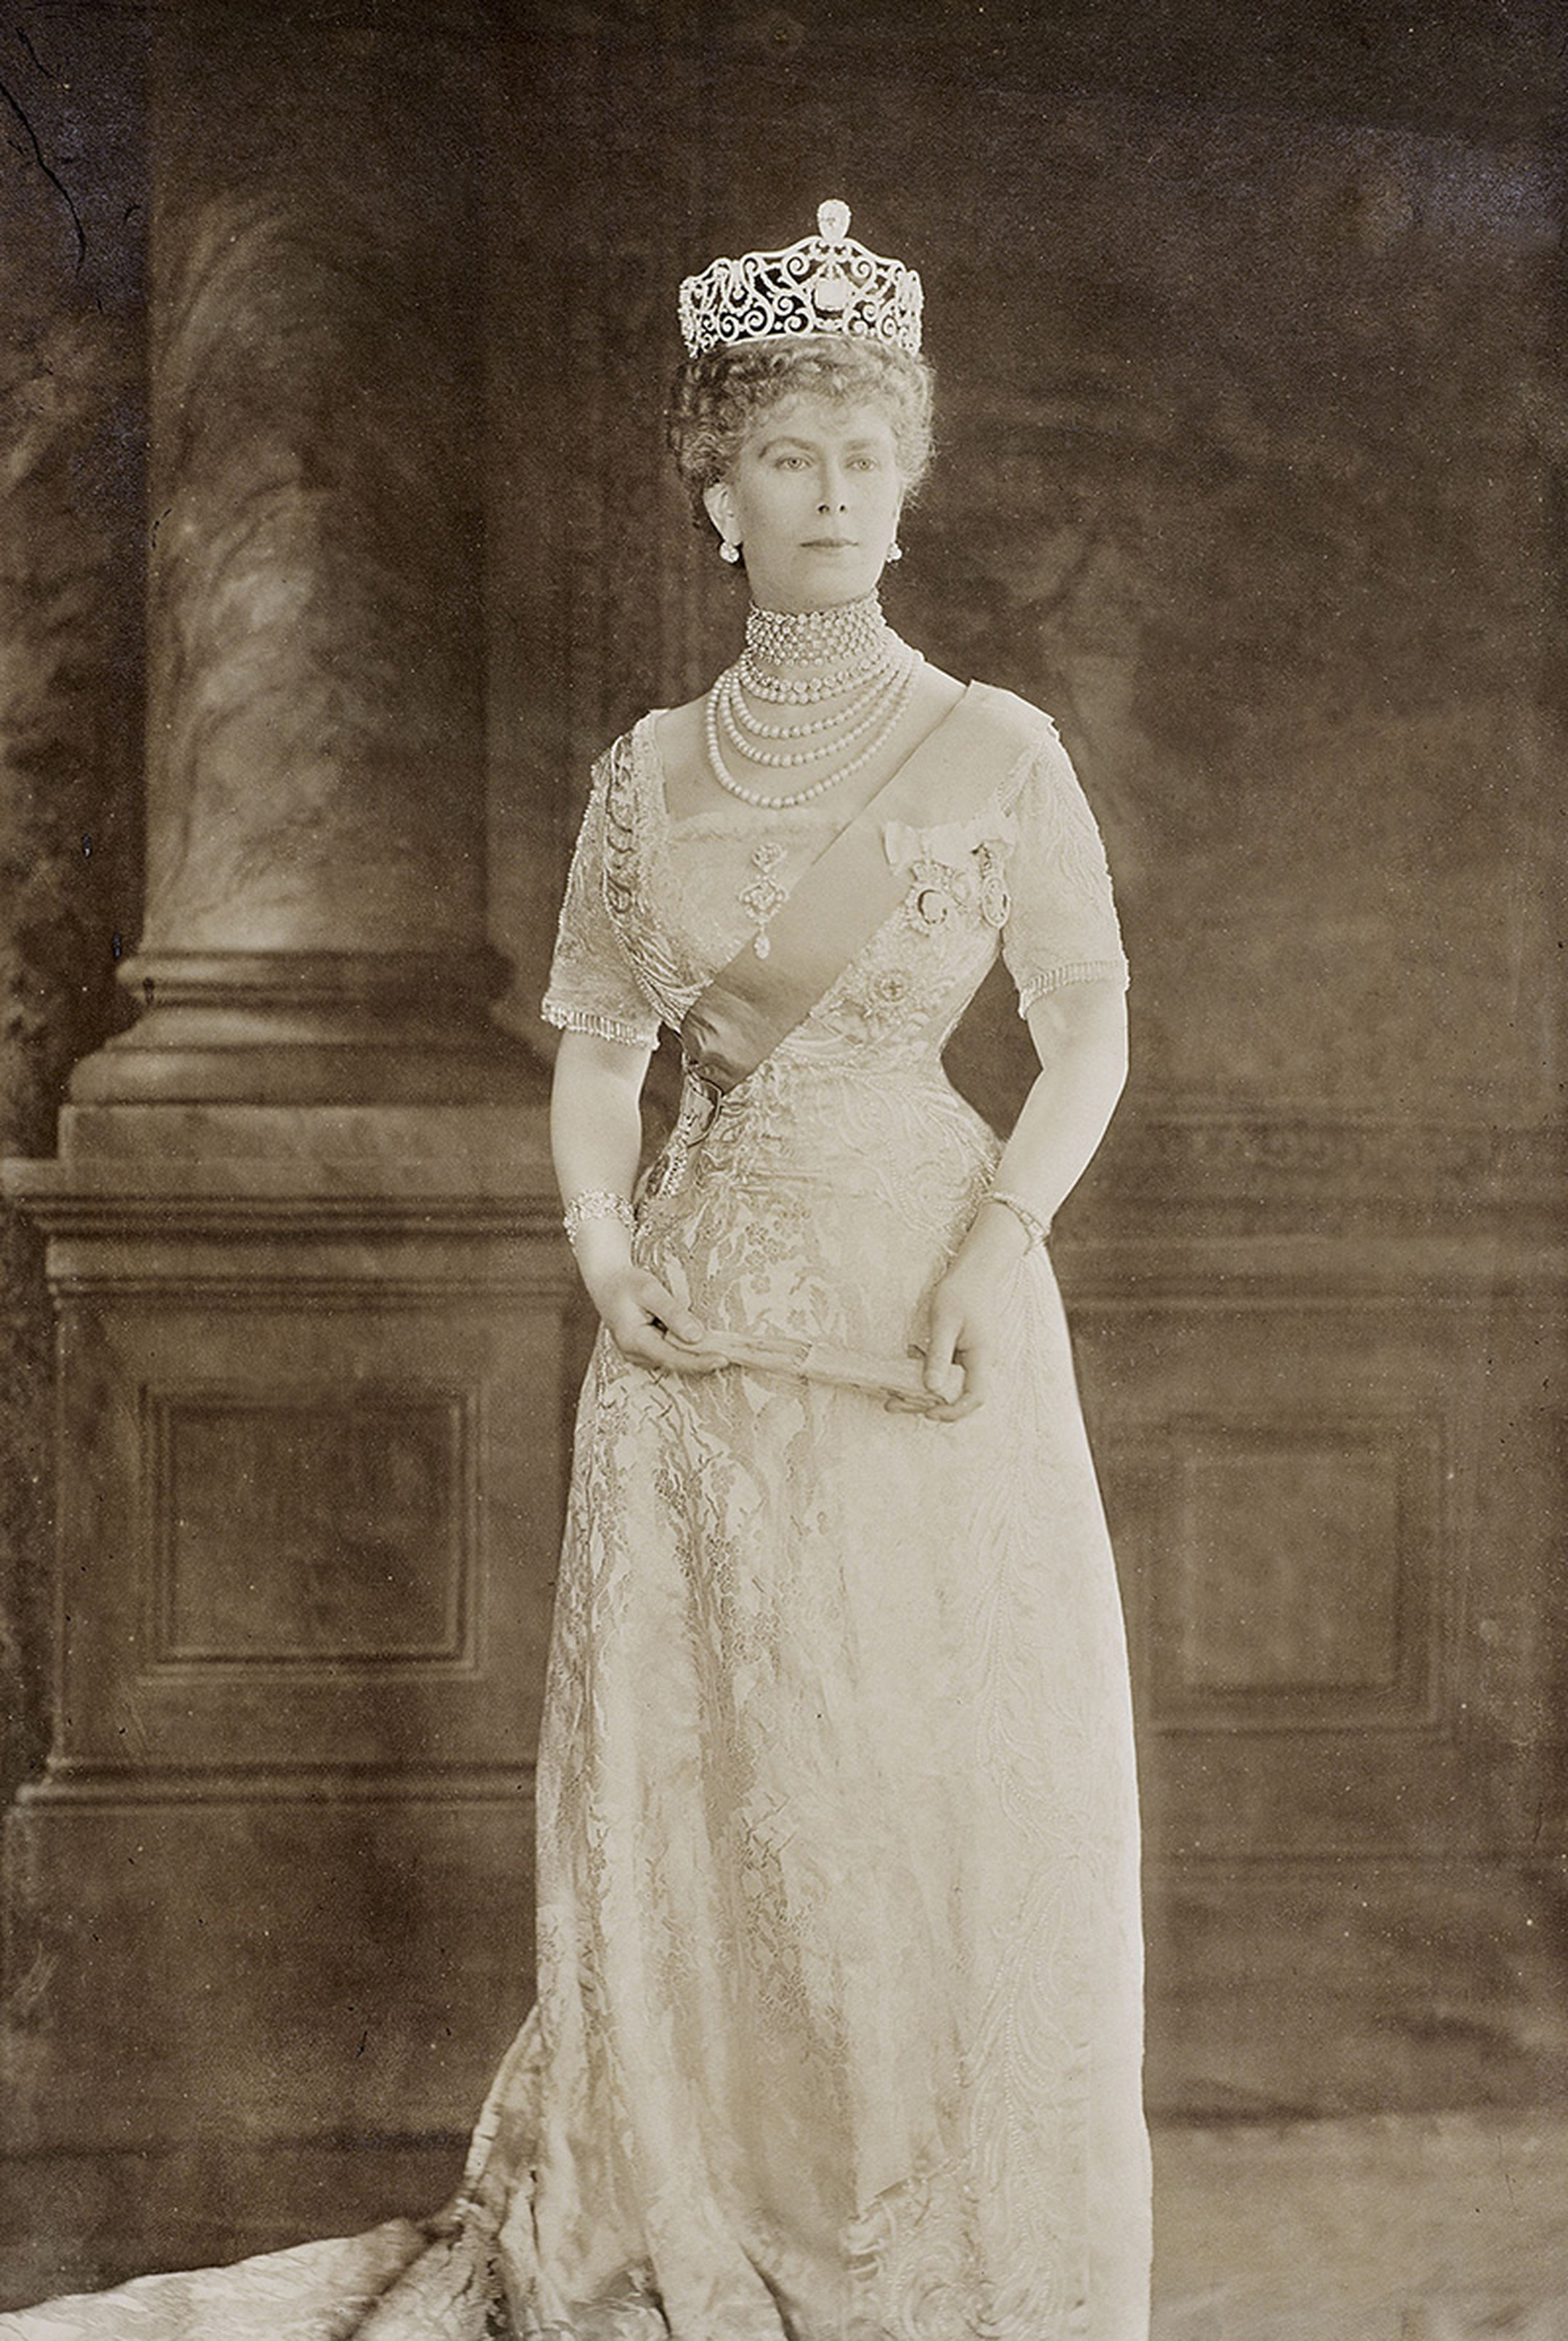 Queen-Mary-wears-the-Delhi-Durbar-Tiara-set-with-Cullinan-III-and-IV-1912-Thomson-.jpg